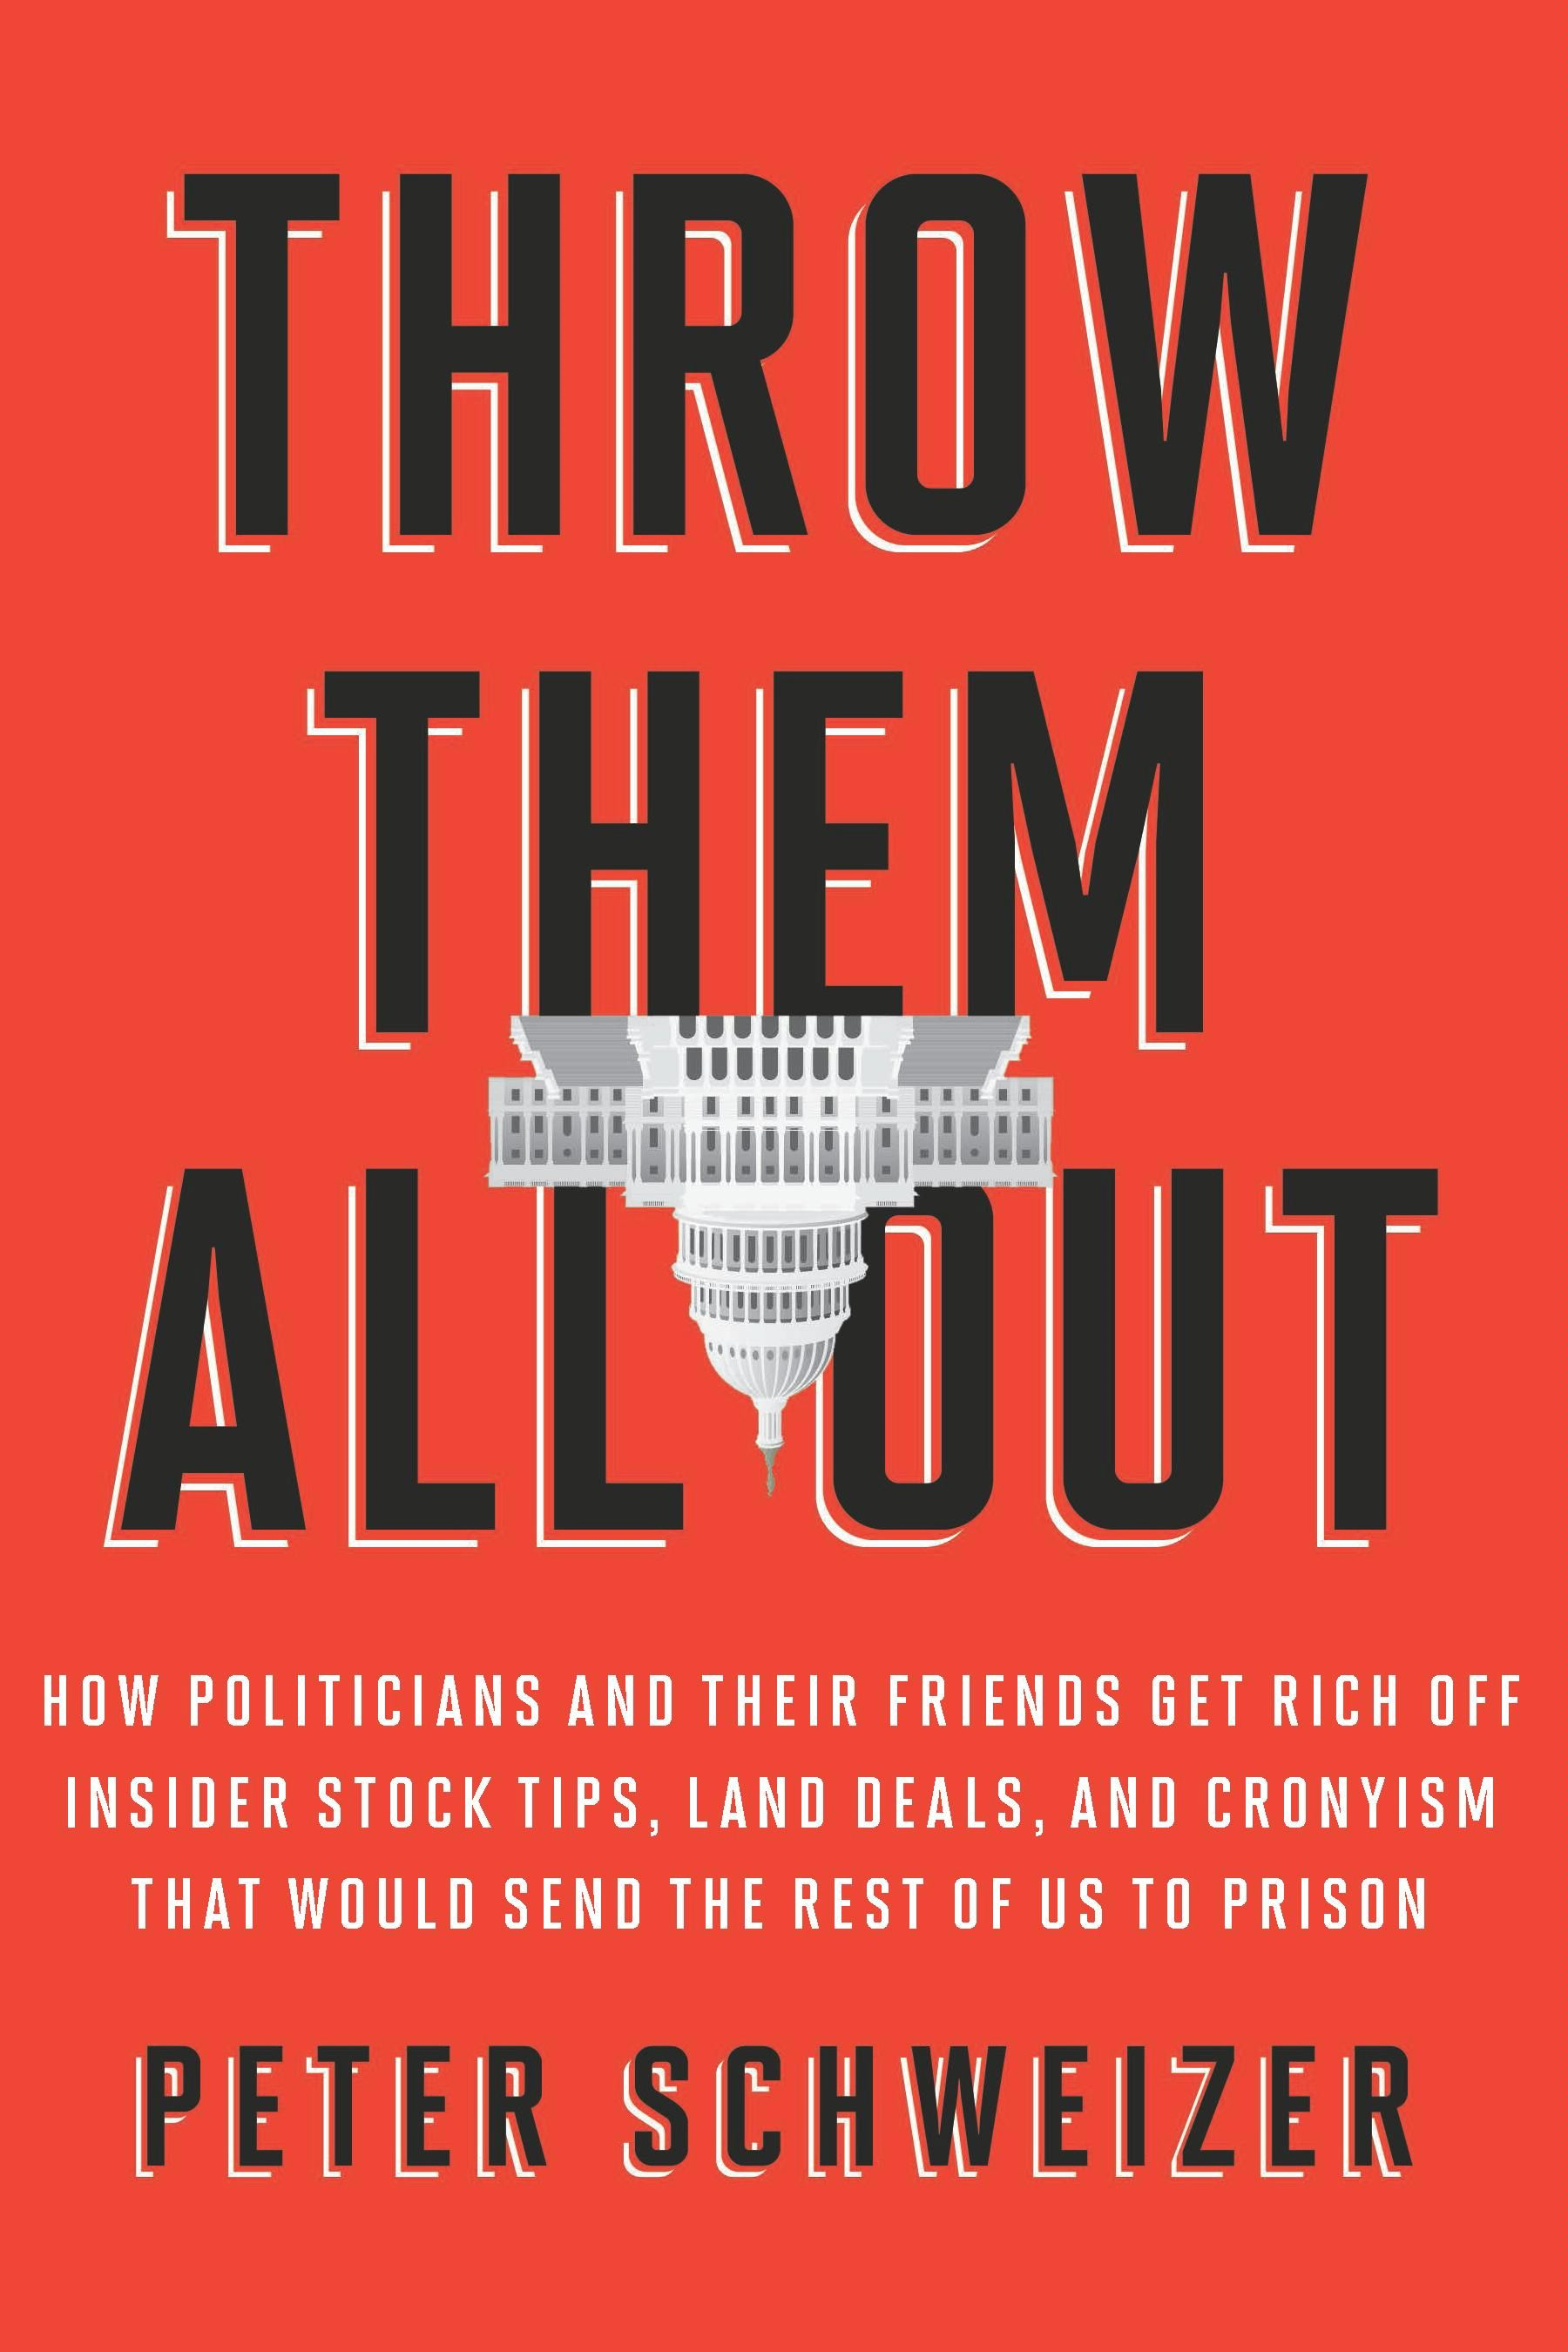 Throw Them All Out: How Politicians and Their Friends Get Rich Off Insider Stock Tips, Land Deals, and Cronyism That Would Send the Rest of Us to Prison By: Peter Schweizer